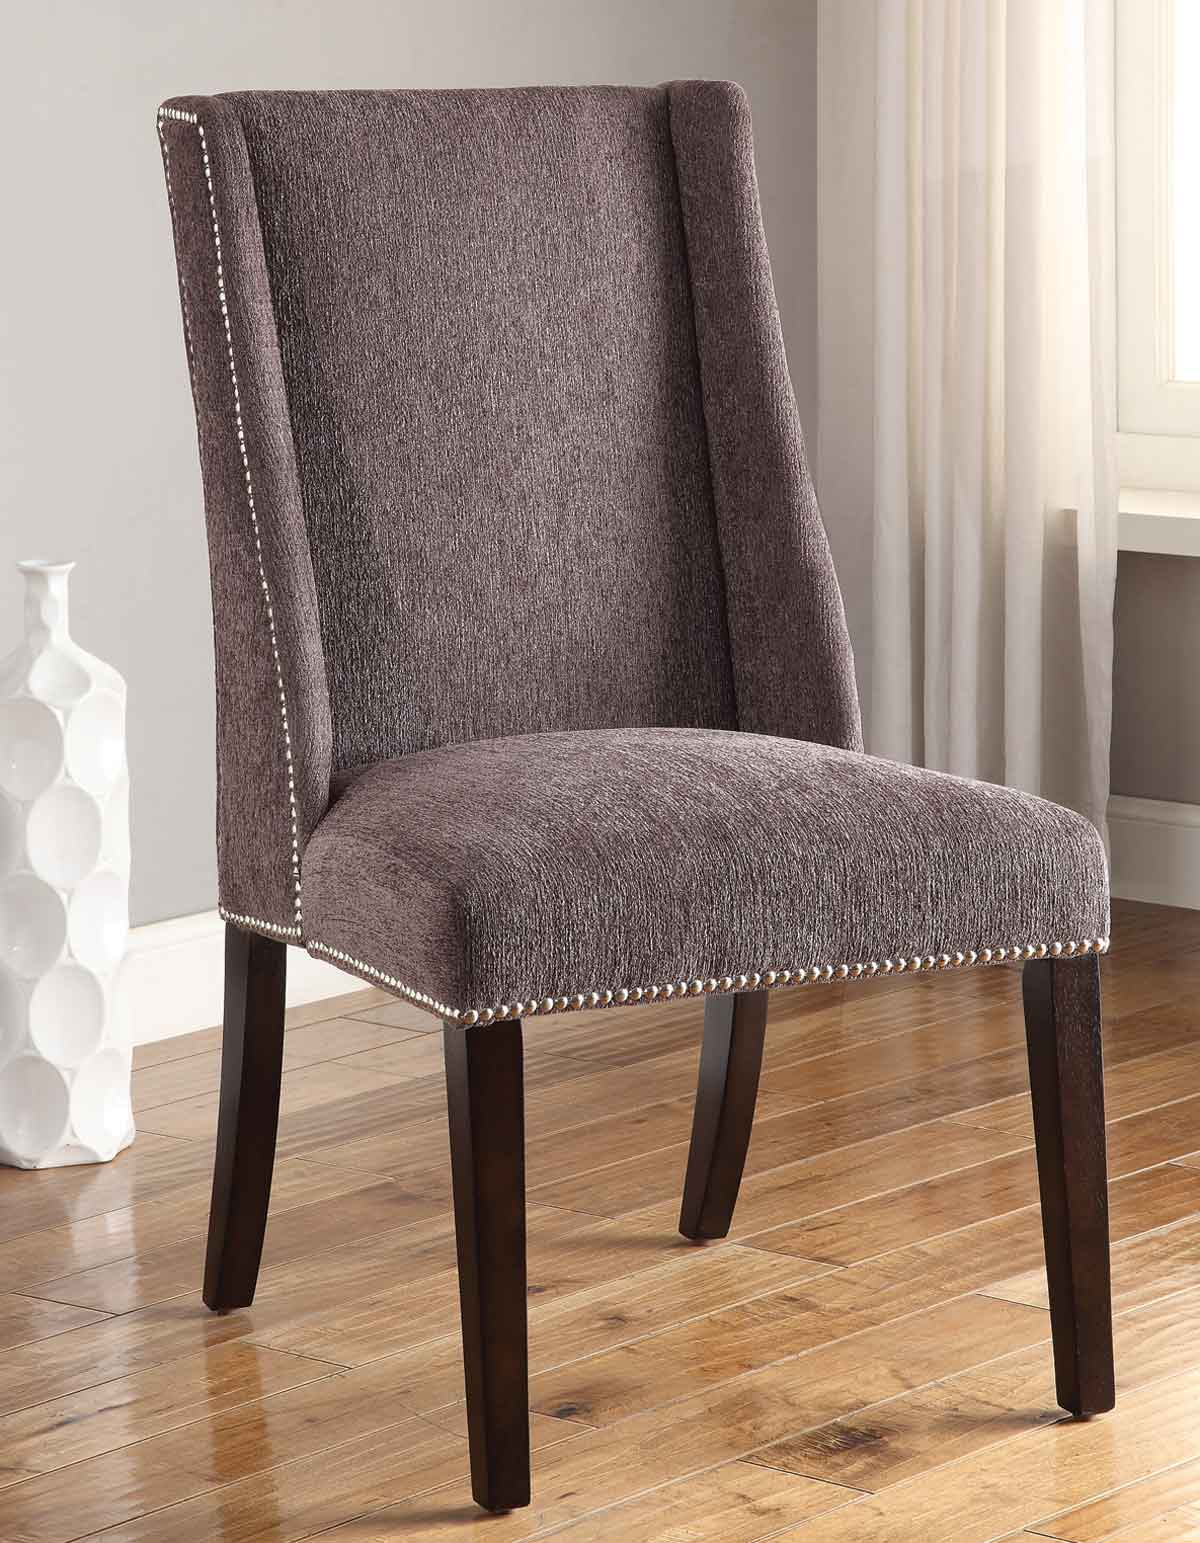 902505 Accent Chair - Grey